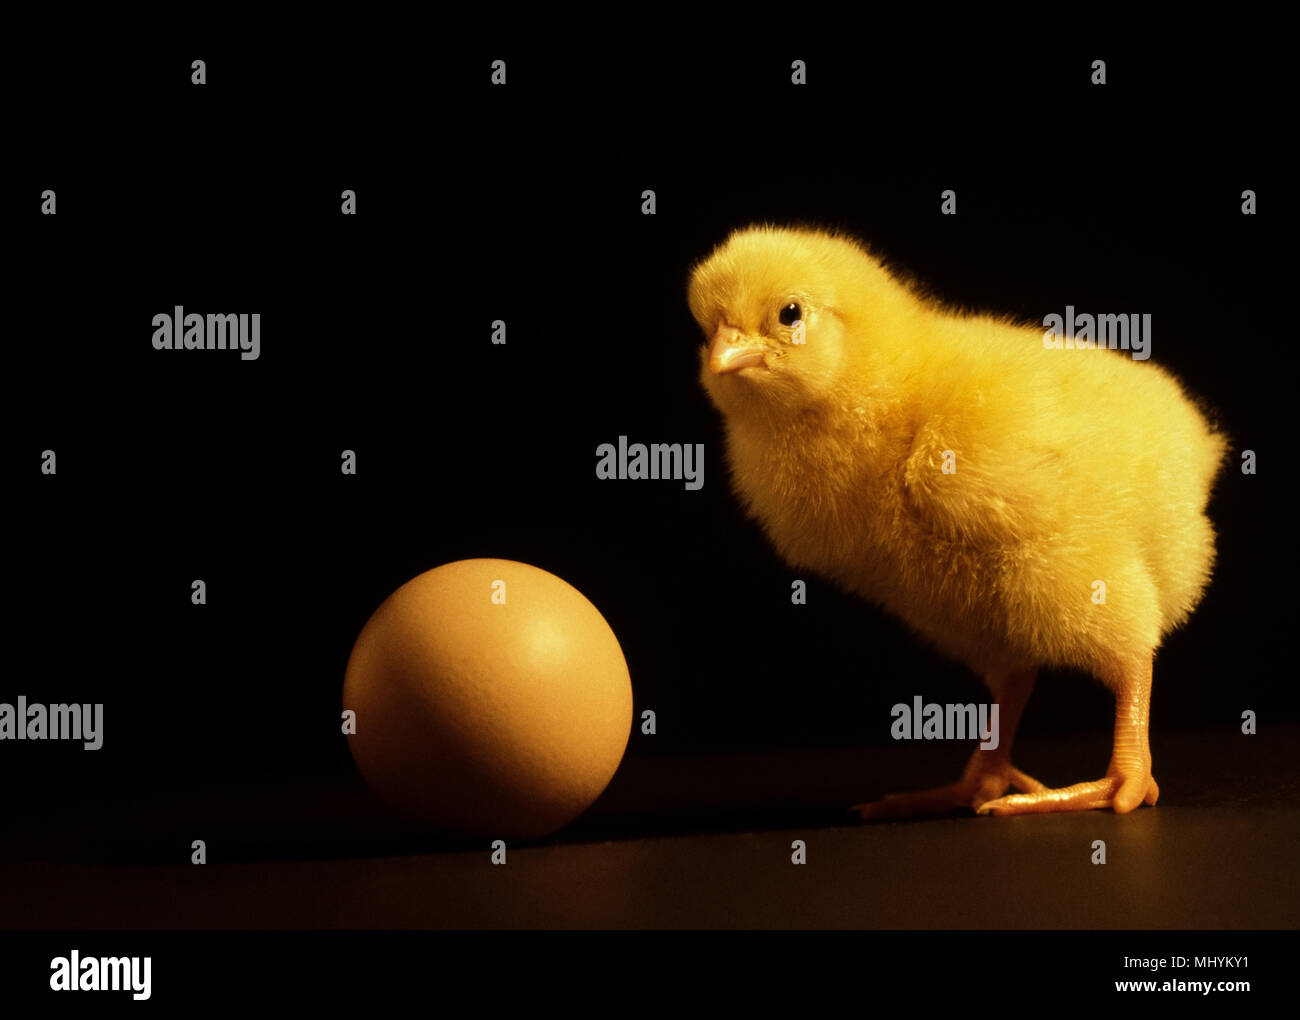 chick and egg newly hatched chick and an egg stock photo 183161189